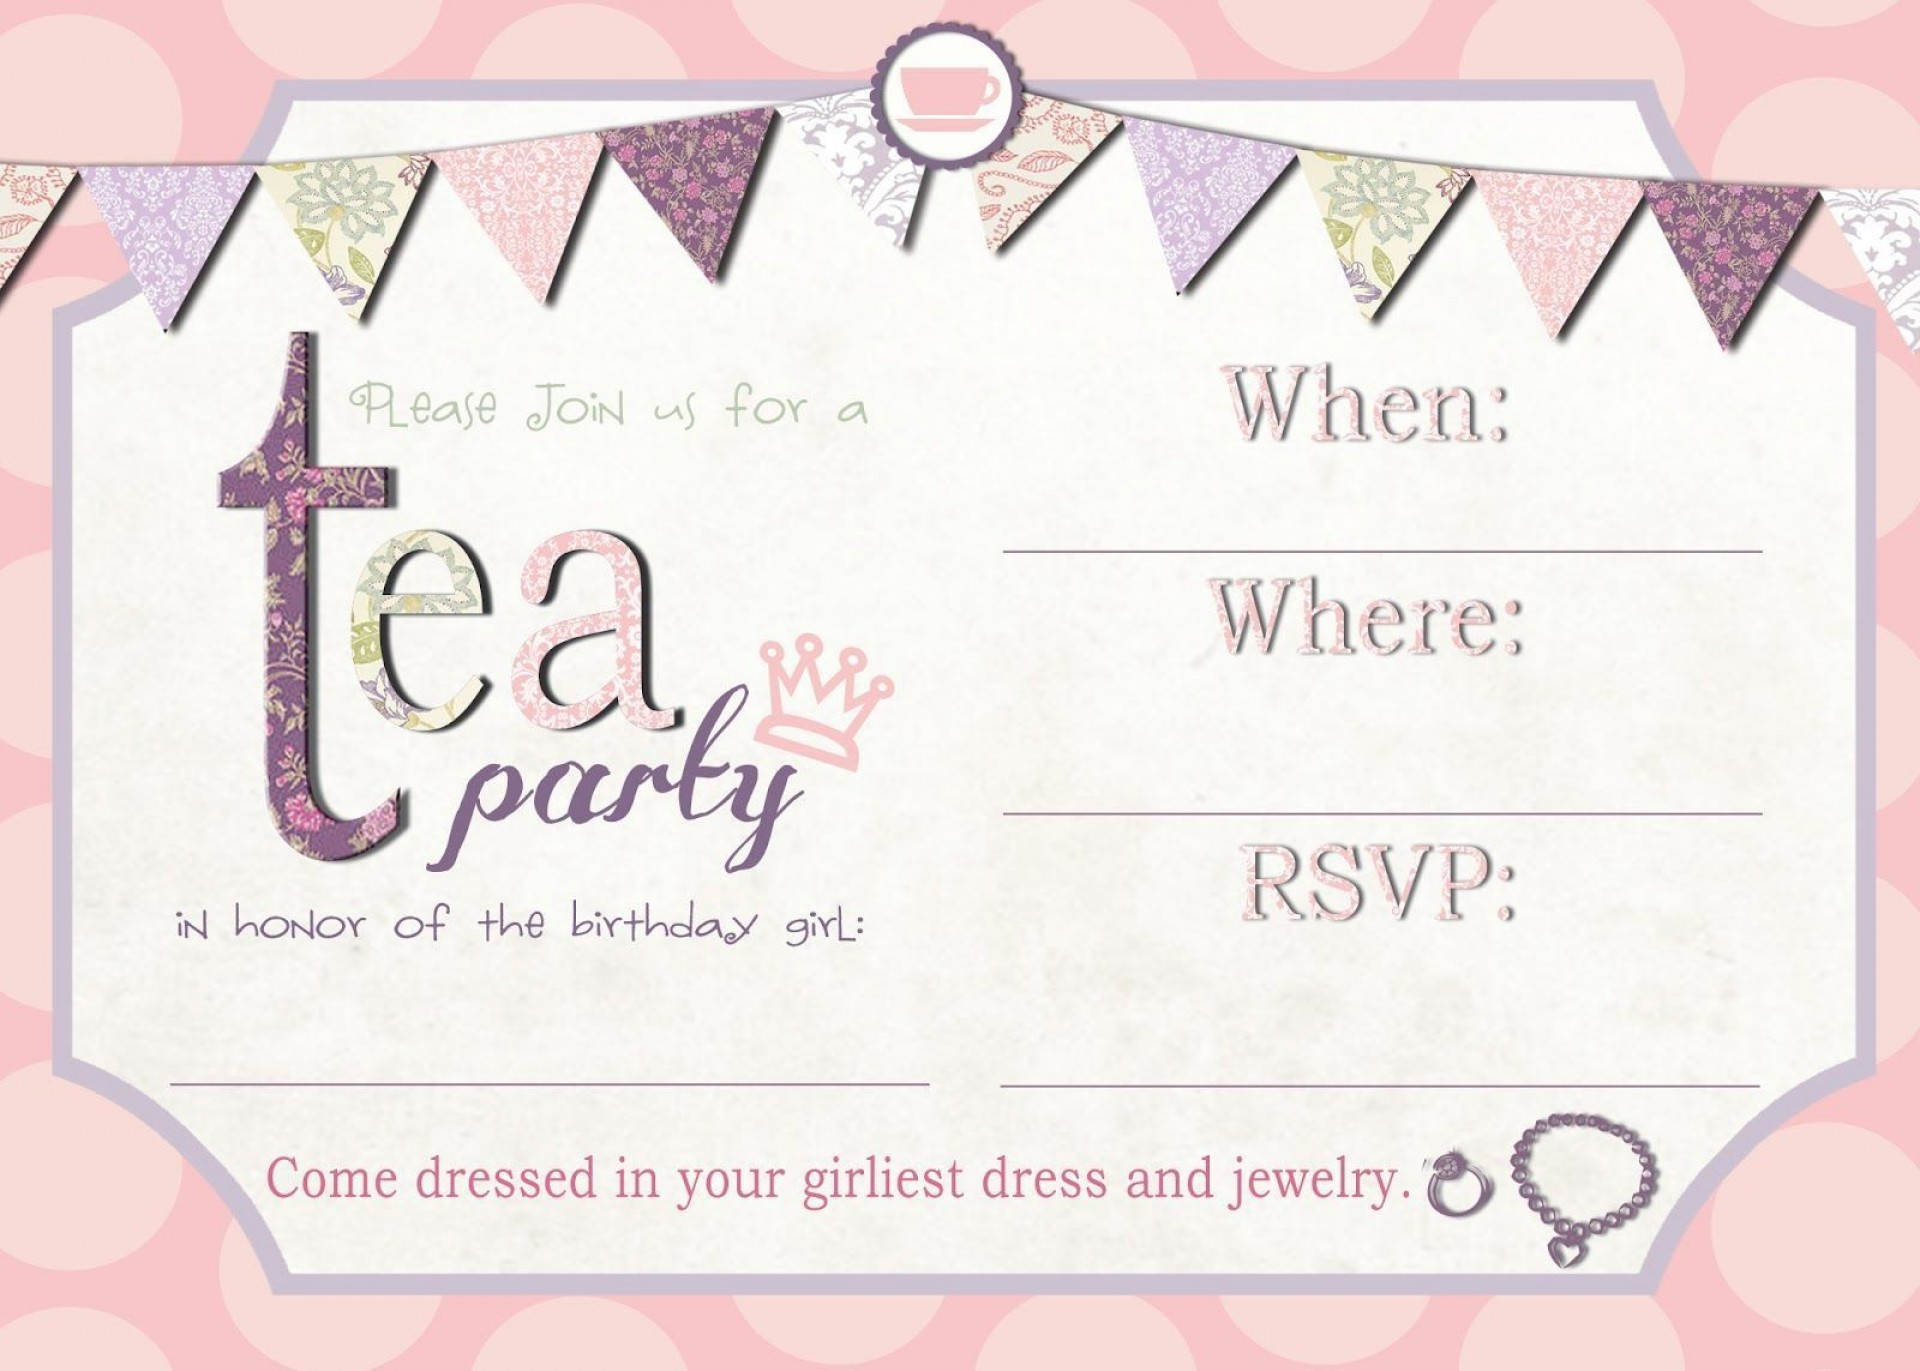 001 Awful Tea Party Invitation Template High Definition  Wording Vintage Free Sample1920